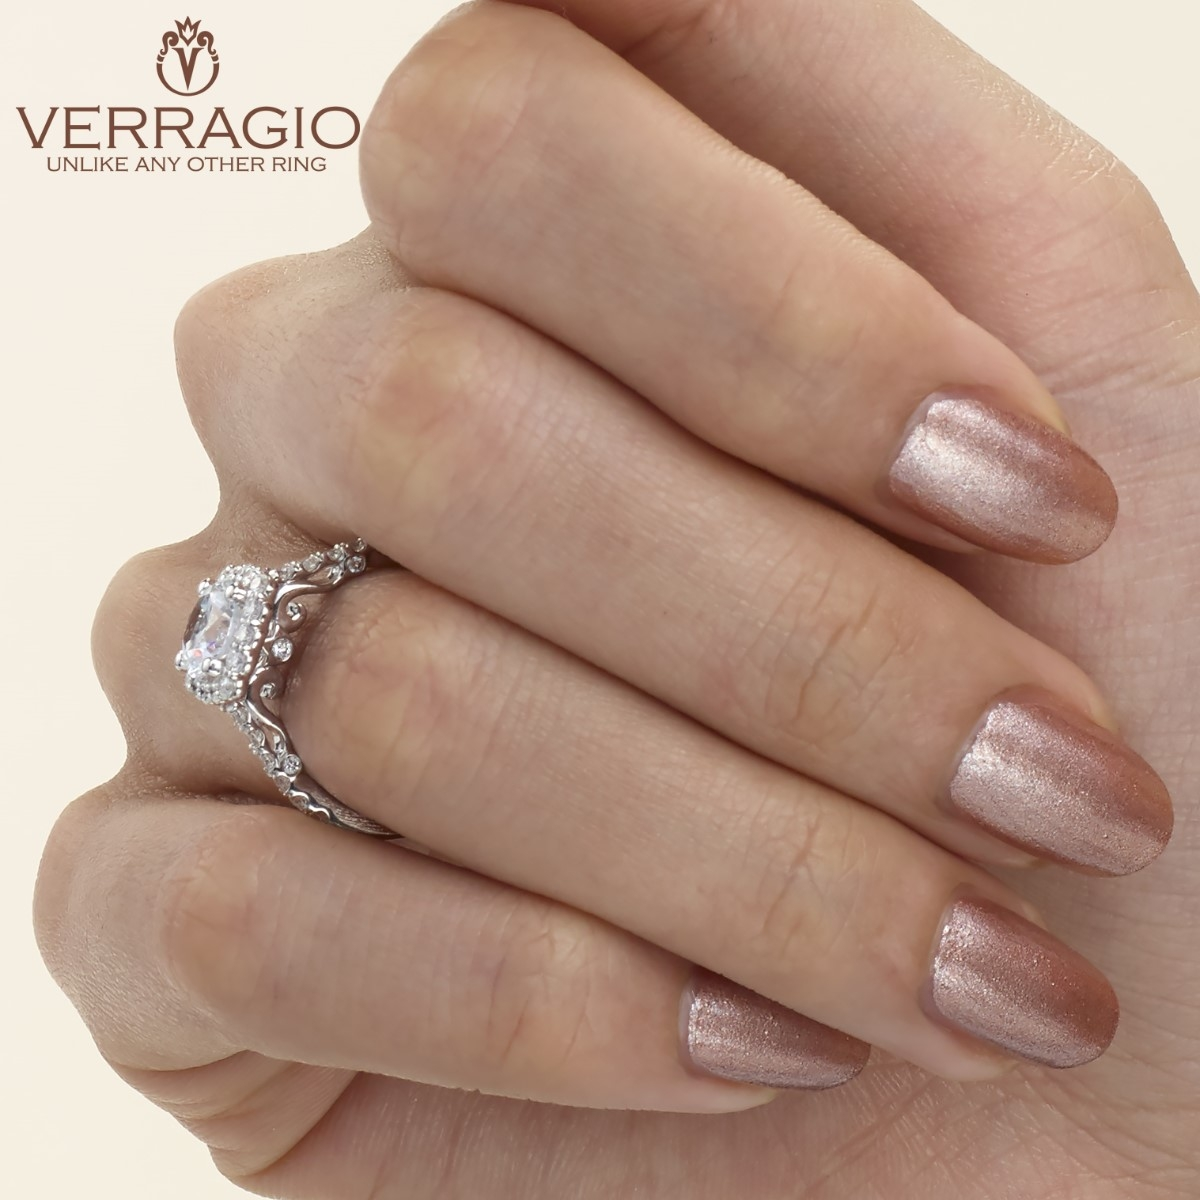 Verragio 18 Karat Insignia Engagement Ring INS-7047 Alternative View 3